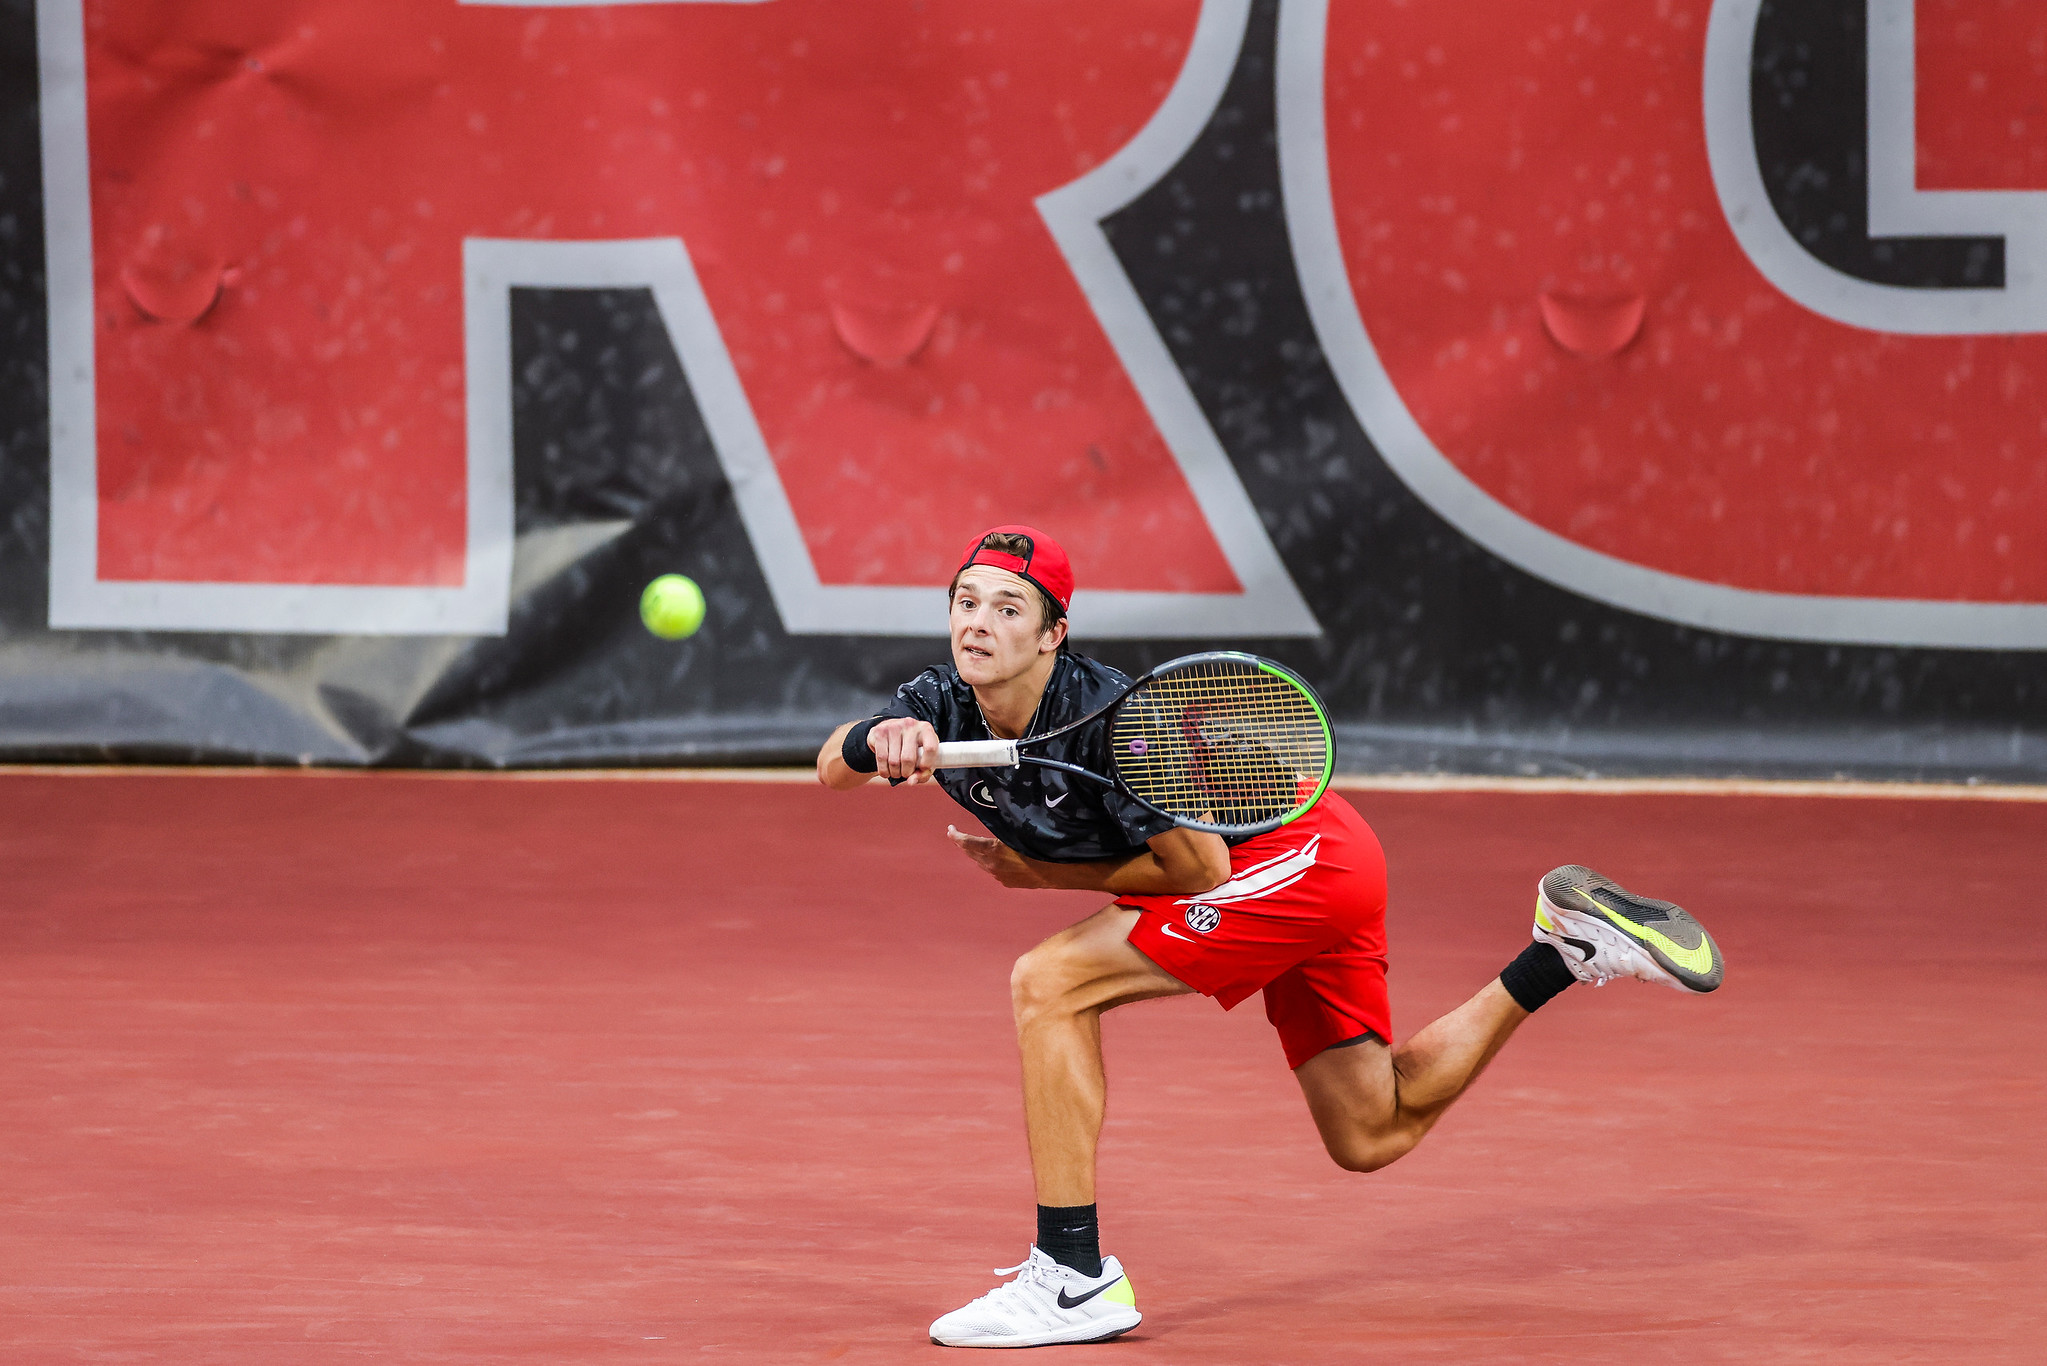 Georgia tennis player Tyler Zink during a match against Texas A&M at the Dan Magill Tennis Complex in Athens, Ga., on Friday, April 9, 2021. (Photo by Tony Walsh)